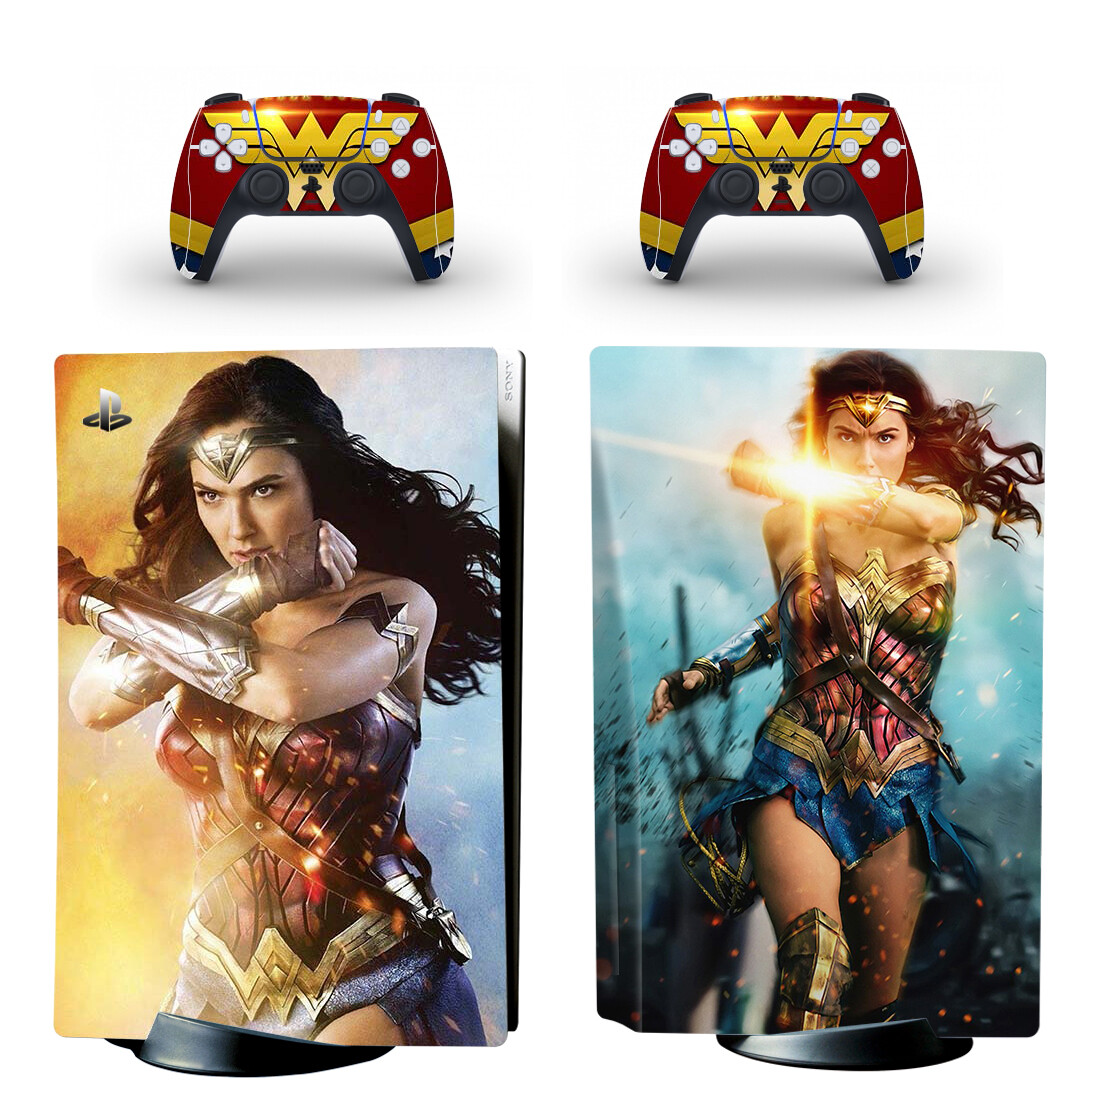 New Film PS5 Standard Disc Edition Skin Sticker Decal Cover for PlayStation 5 Console & Controller PS5 Skin Sticker Vinyl